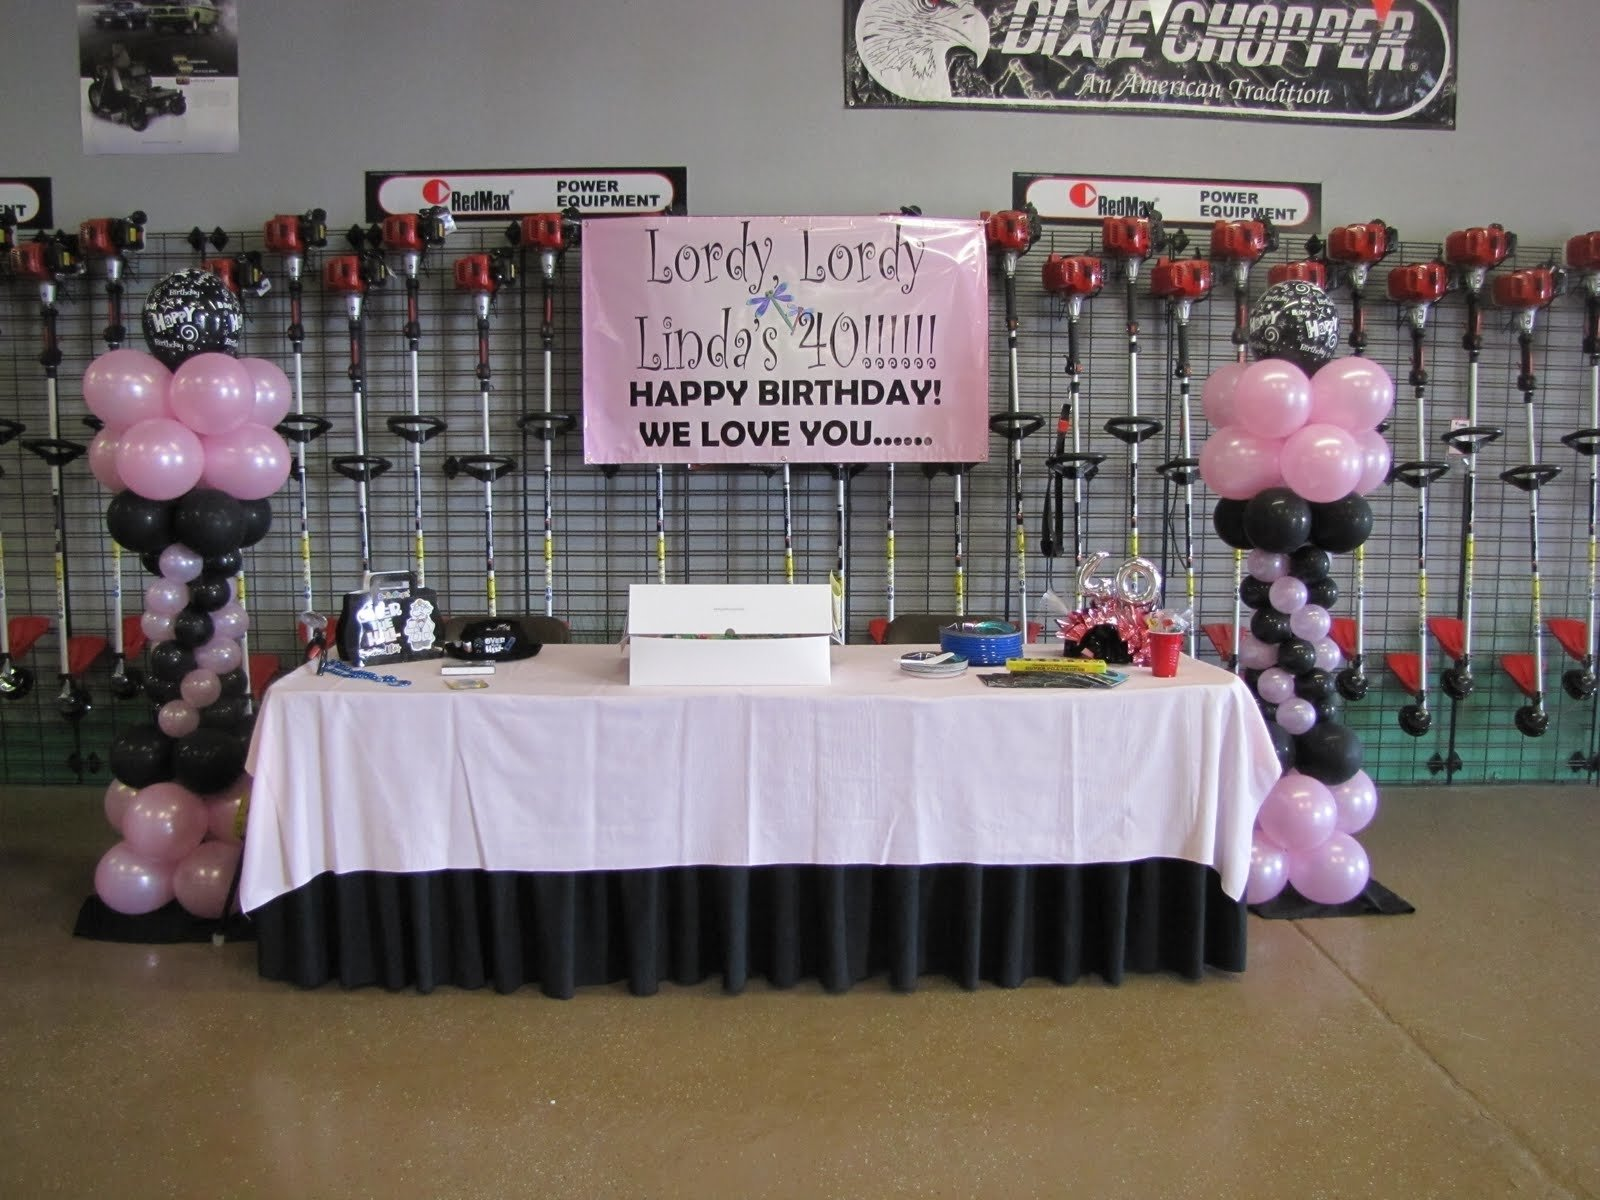 10 Awesome 40Th Birthday Celebration Ideas For Her minus the backgroundcute idea for 40th birthday birthdays and 2020